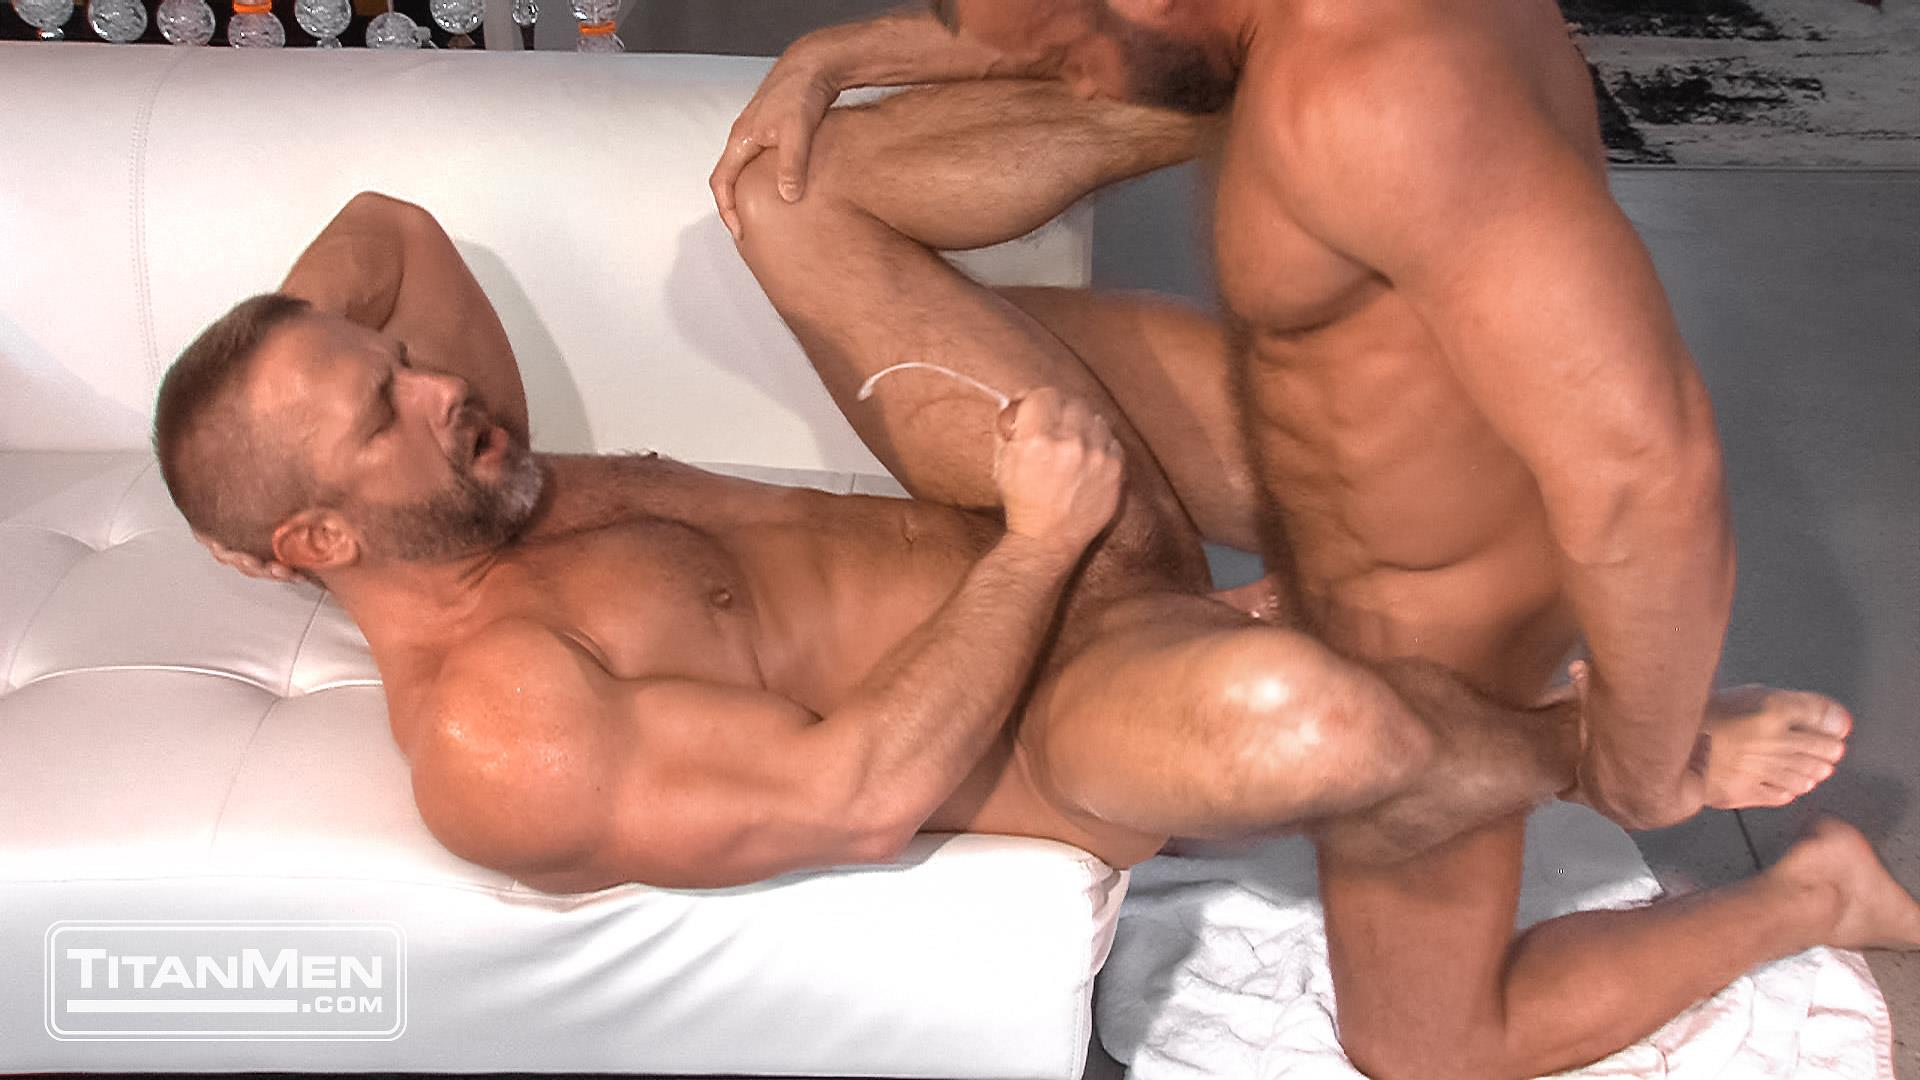 Titanmen Titan Hunter Marx and Dirk Caber Hairy Muscle Daddy Fuck Amateur Gay Porn 44 Dirk Carber Gets Fucked Hard By Another Muscle Daddy With A Thick Cock